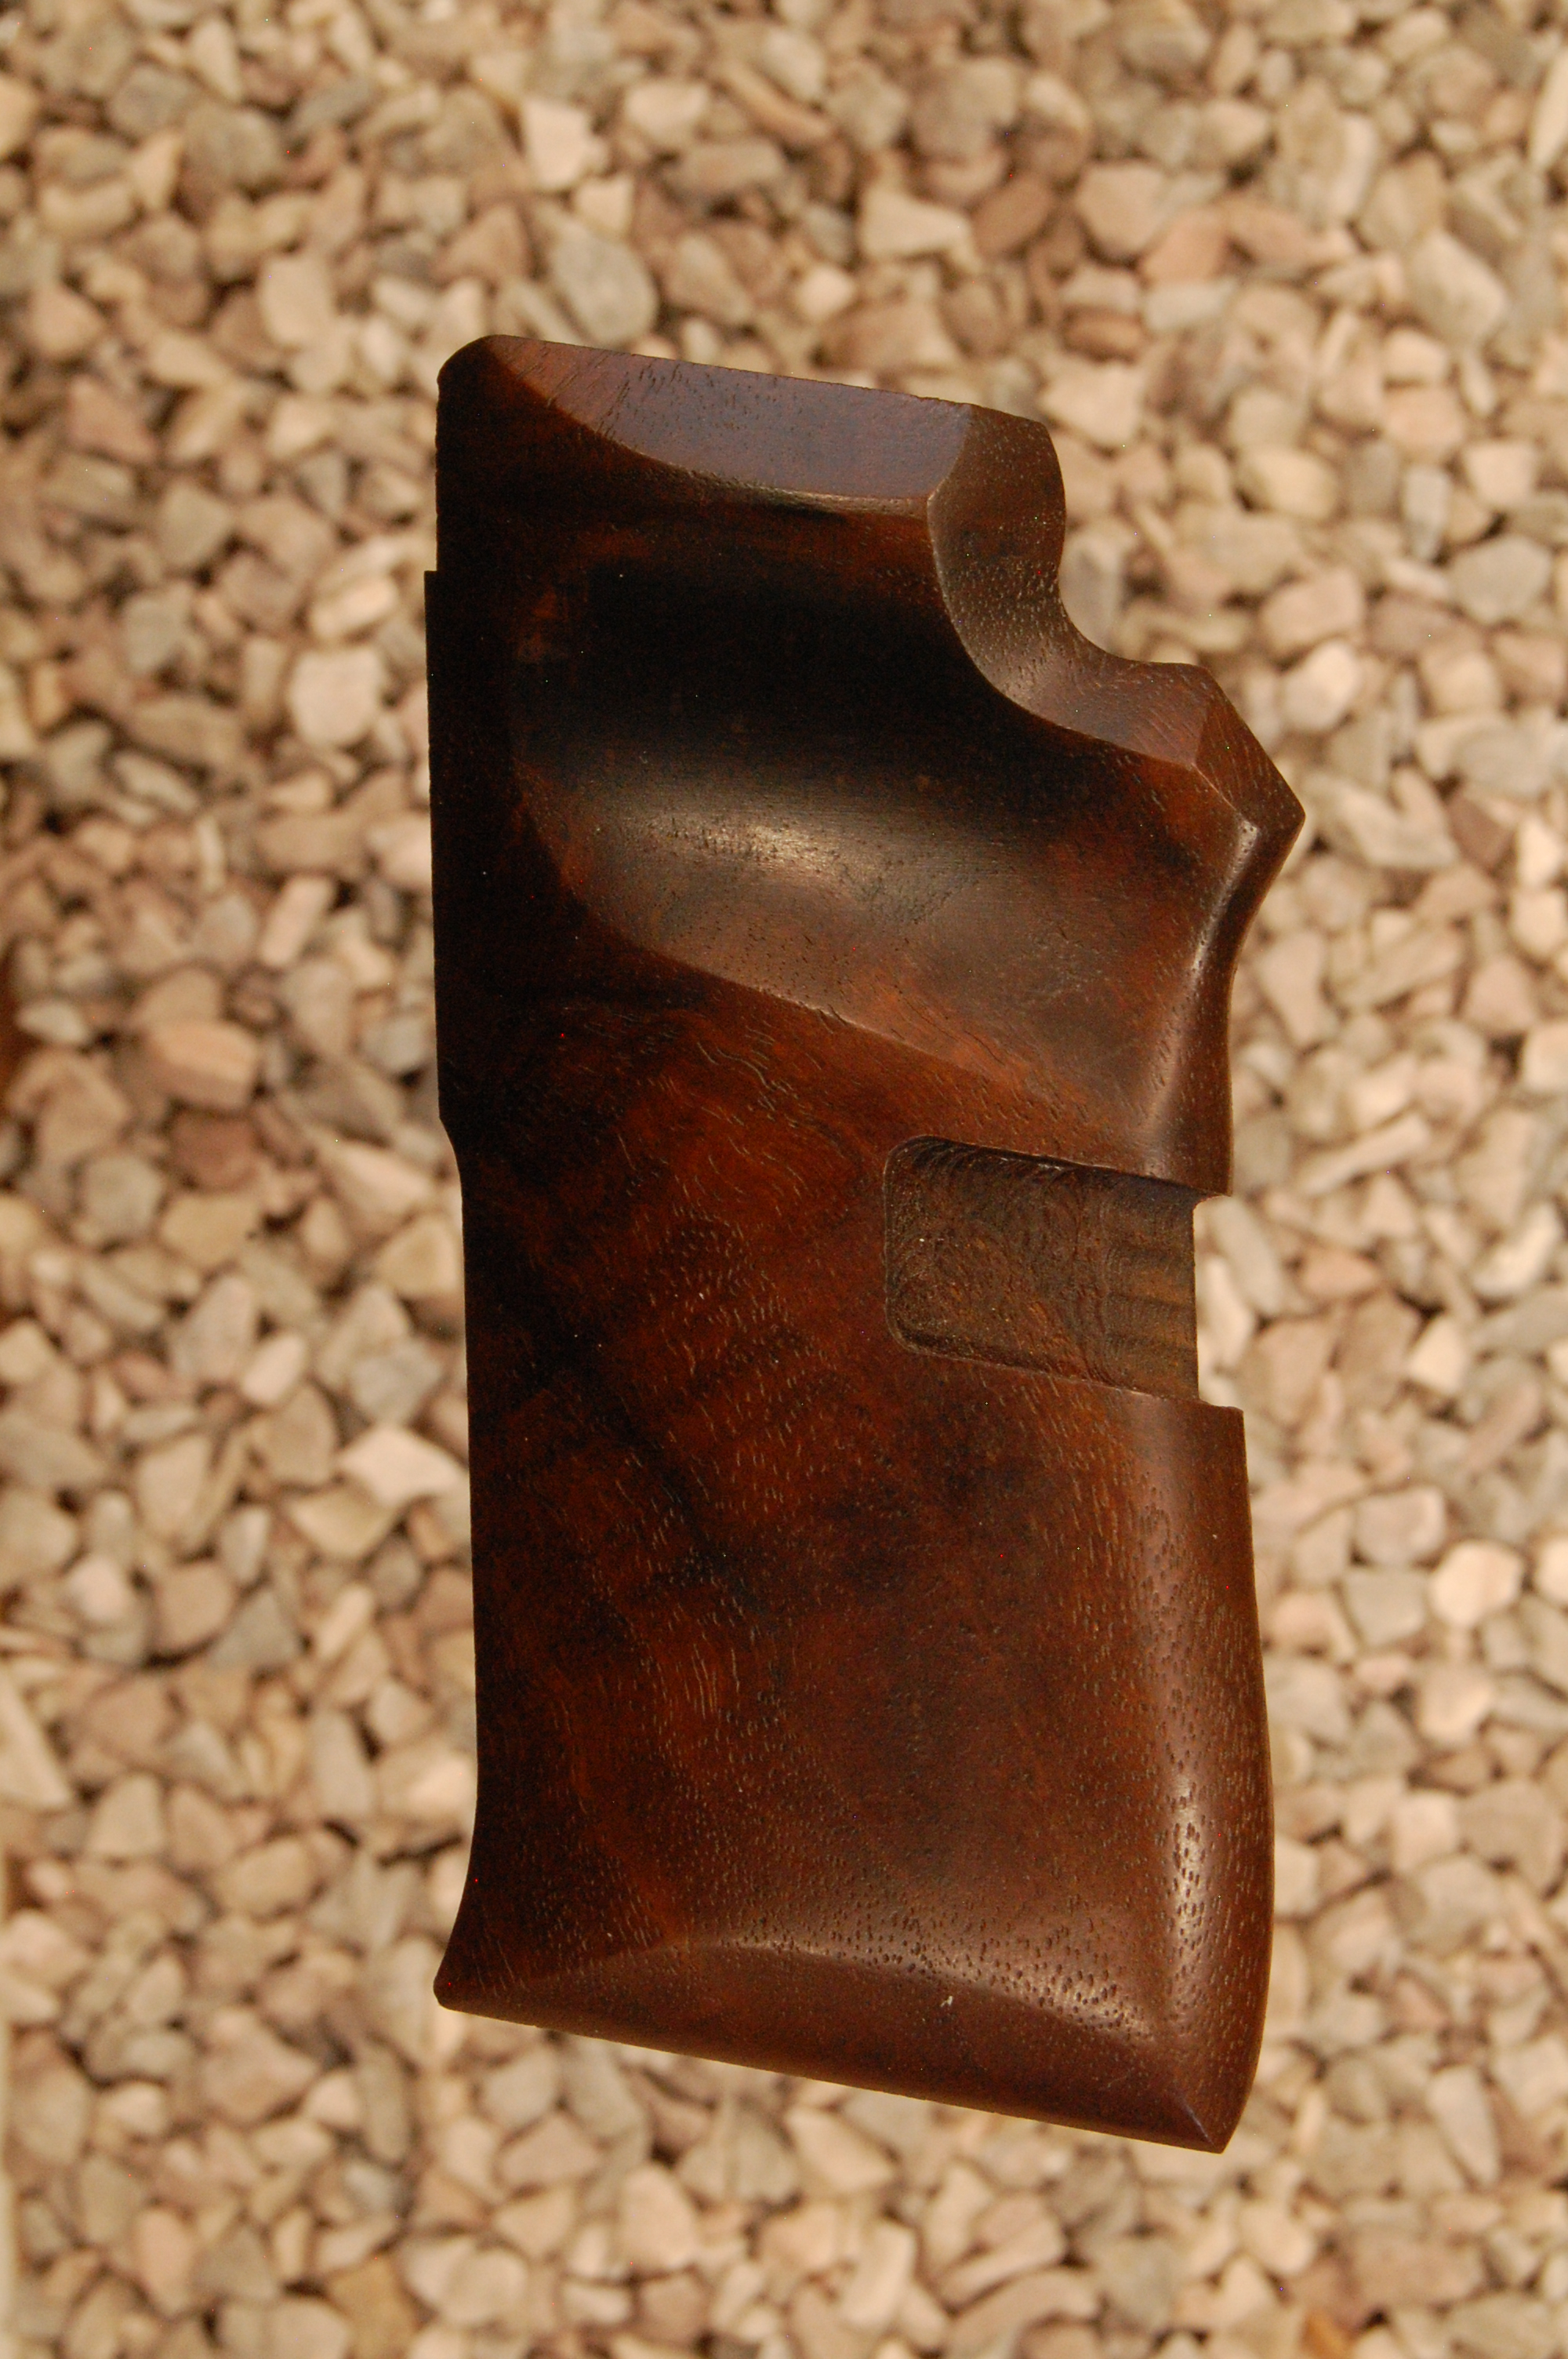 CZ 52 grips (smooth) - full size